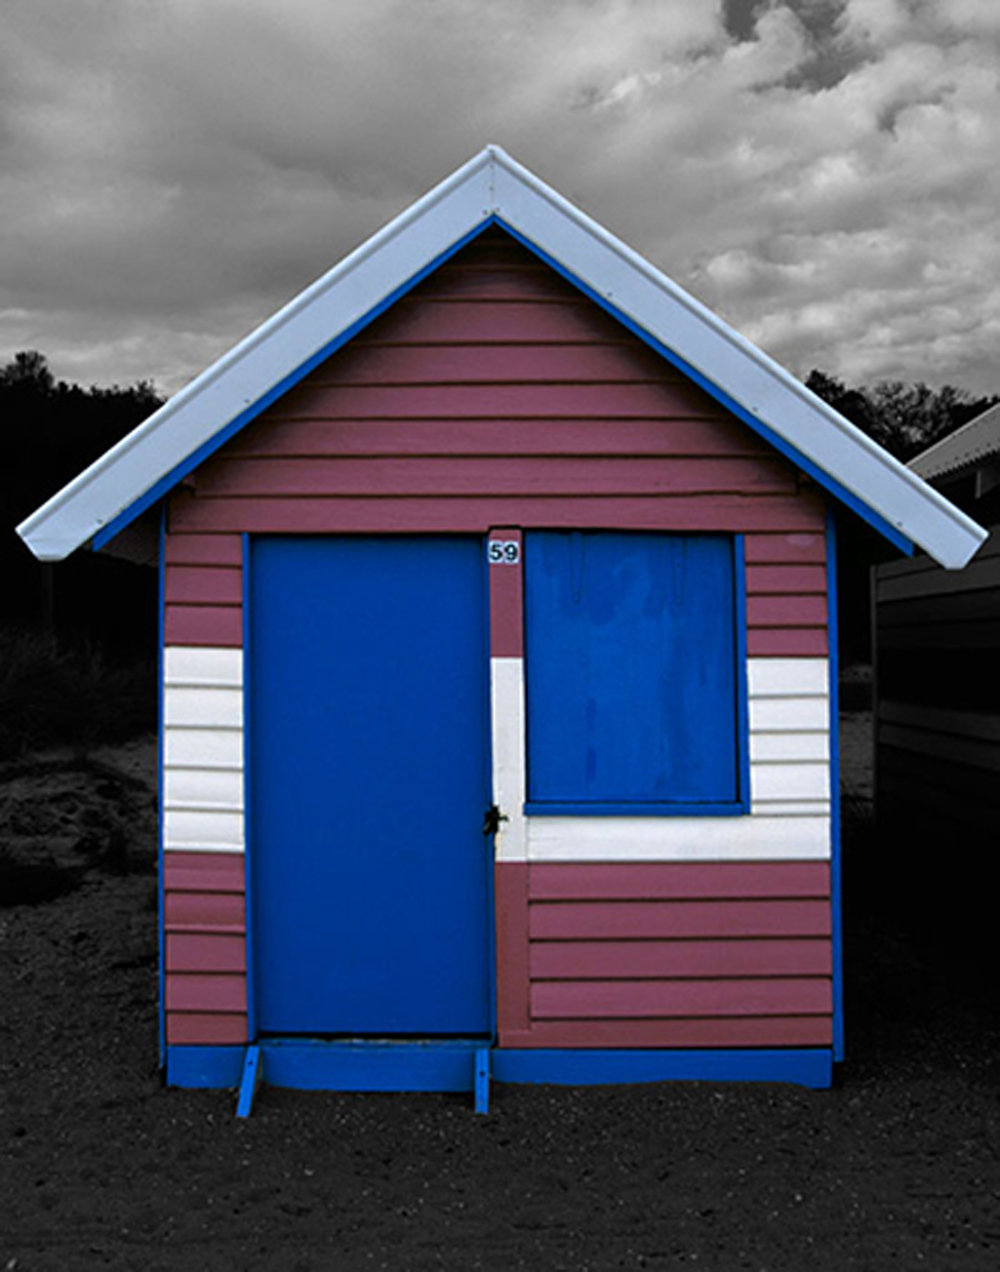 Beach Box #59  20 x 16 inches / 50 x 40 cm, archival pigment print, edition of 15, 2003